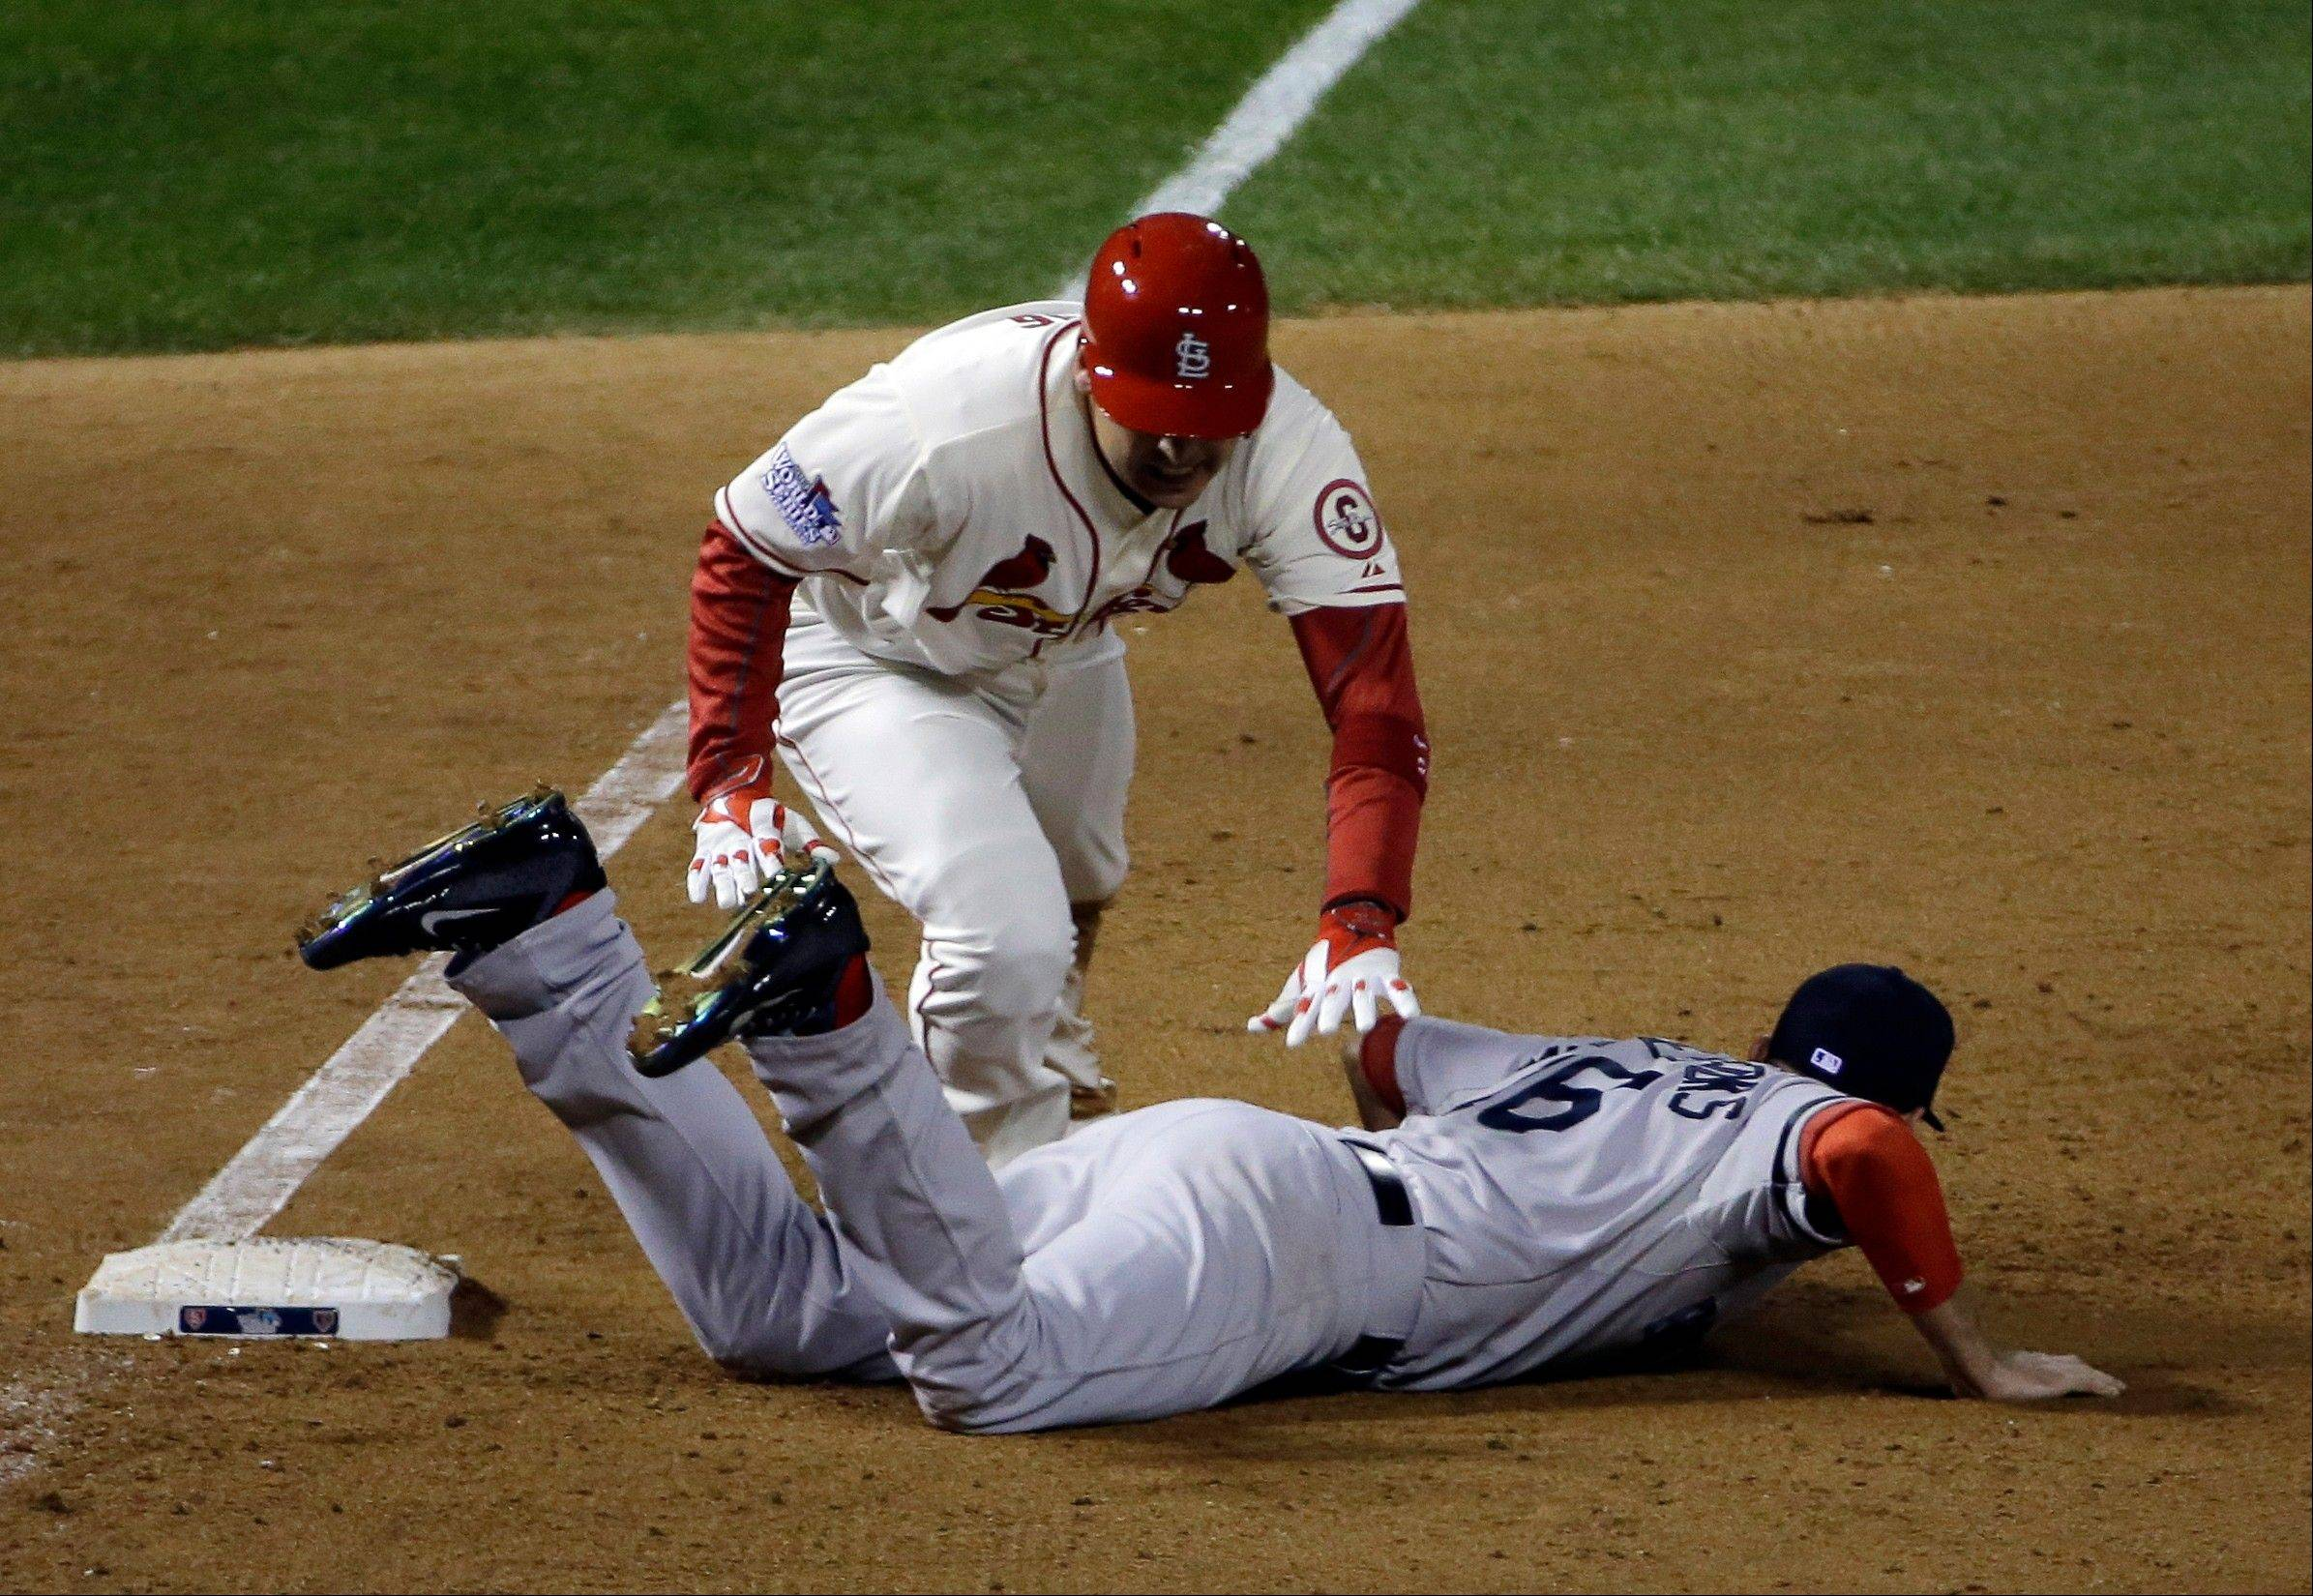 St. Louis Cardinals' Allen Craig gets tangled with the Boston Red Sox' Will Middlebrooks during the ninth inning of Game 3. Middlebrooks was called for obstruction on the play and Craig went in to score the game-winning run. The Cardinals won 5-4 to take a 2-1 lead in the series.